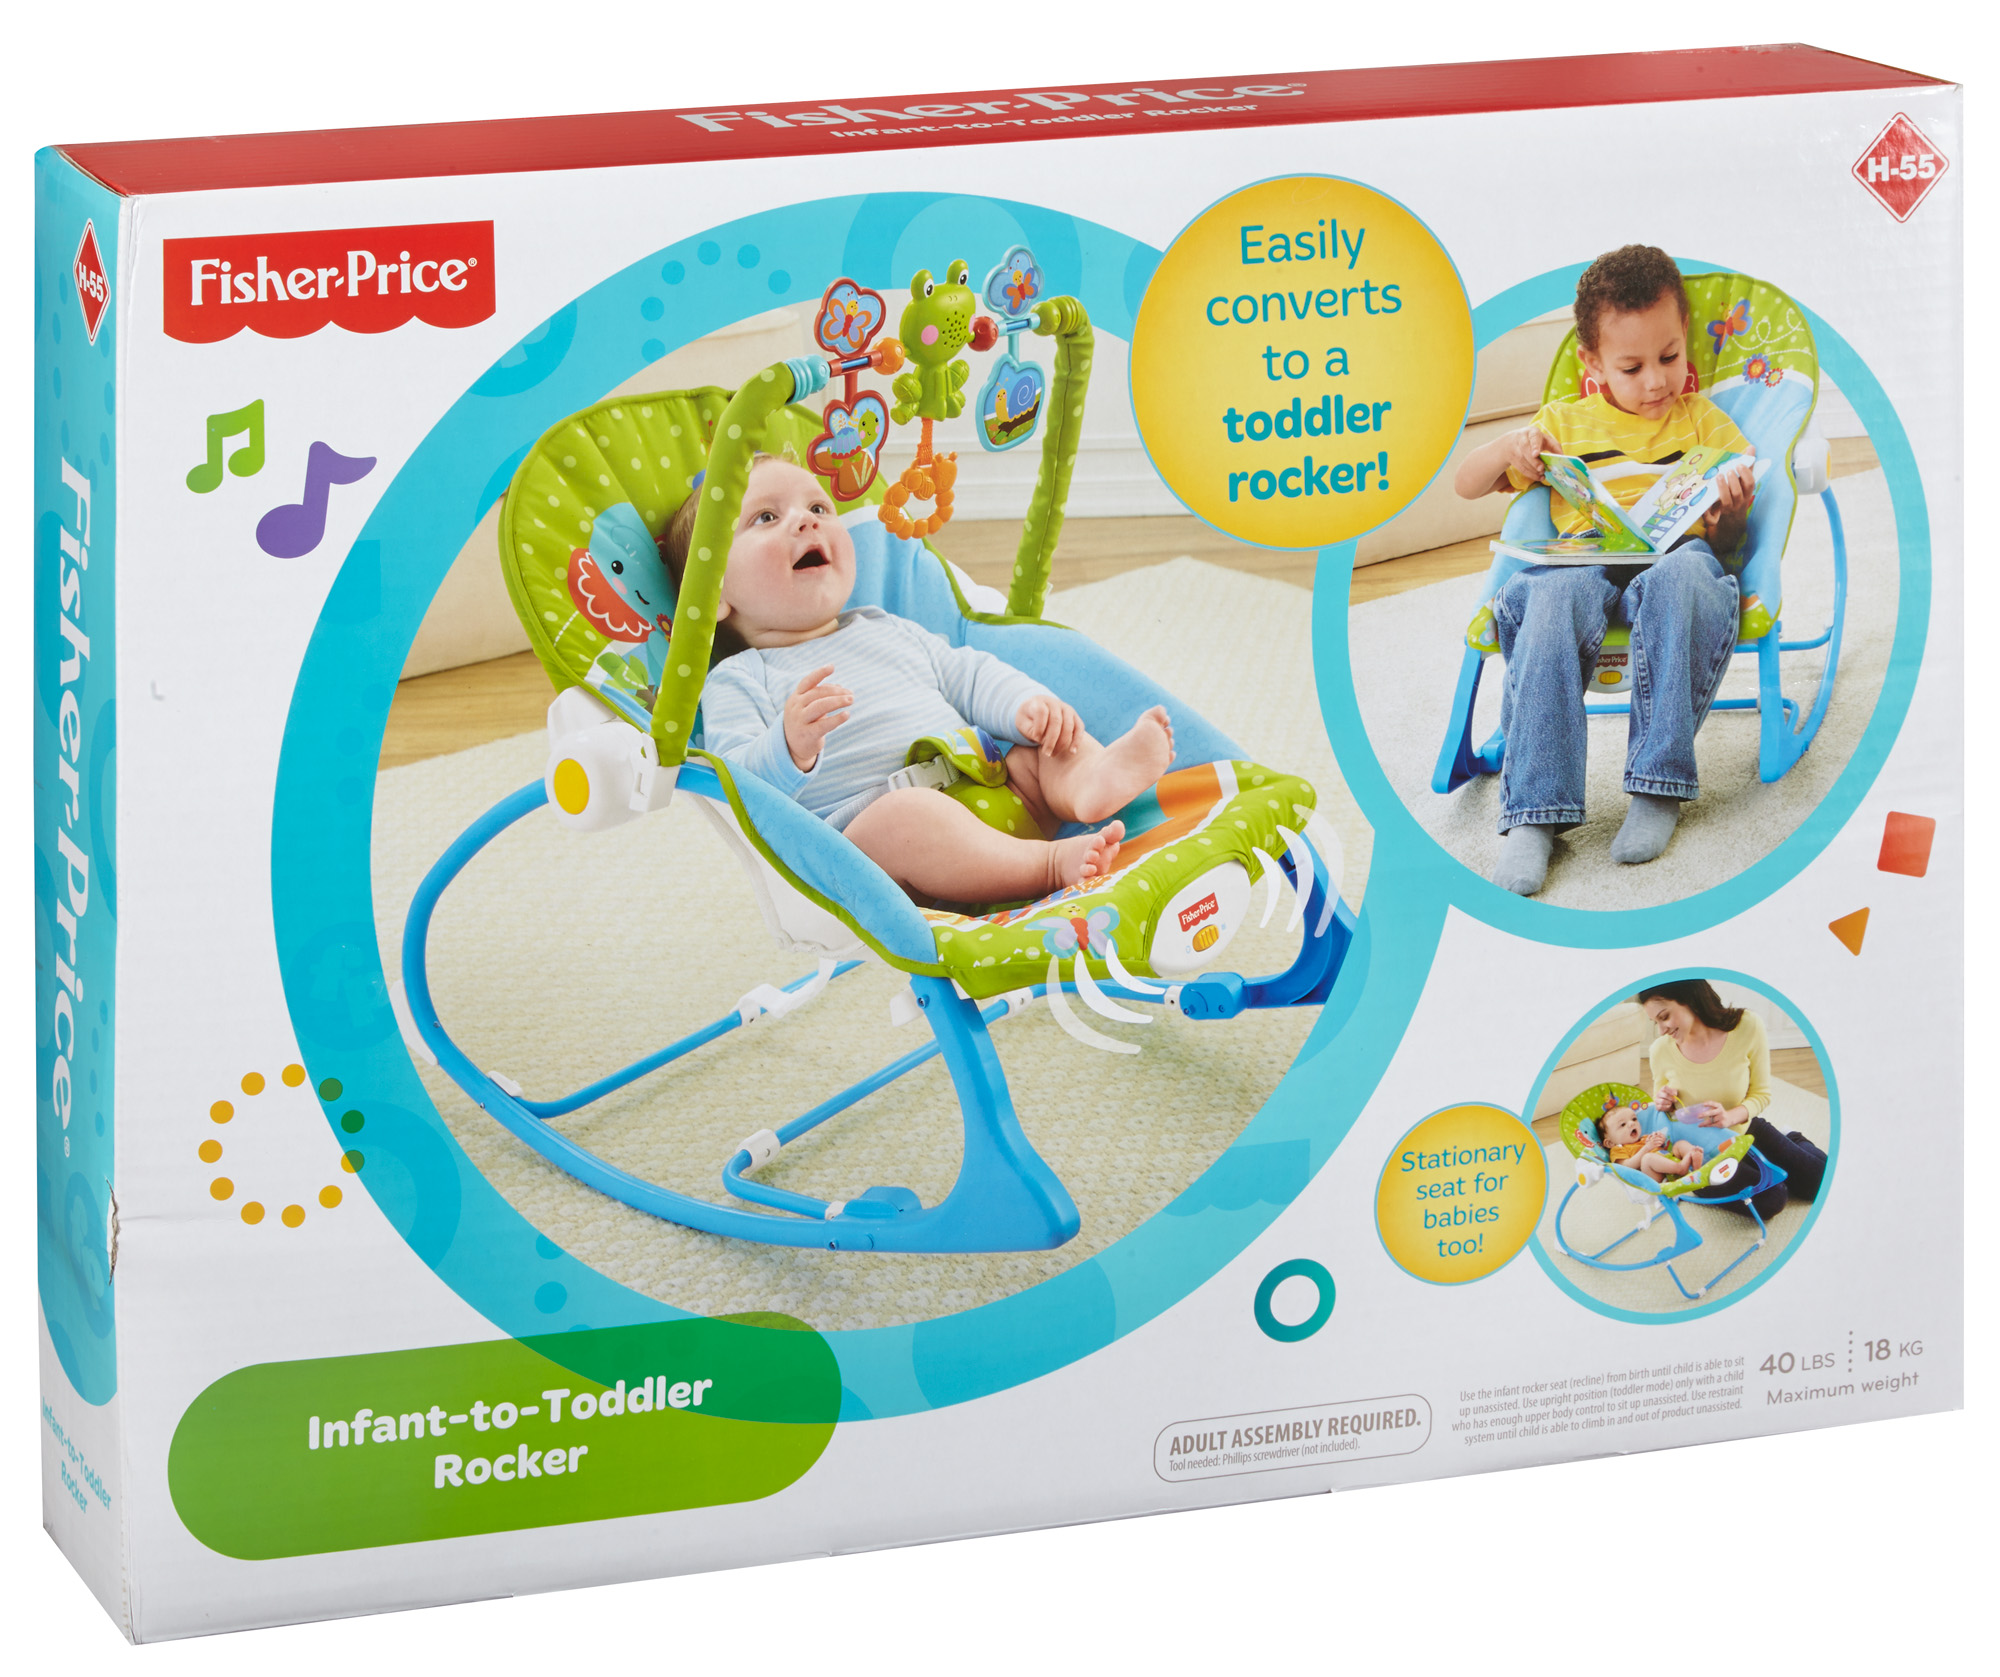 07a371923 Fisher-Price Infant-to-Toddler Rocker